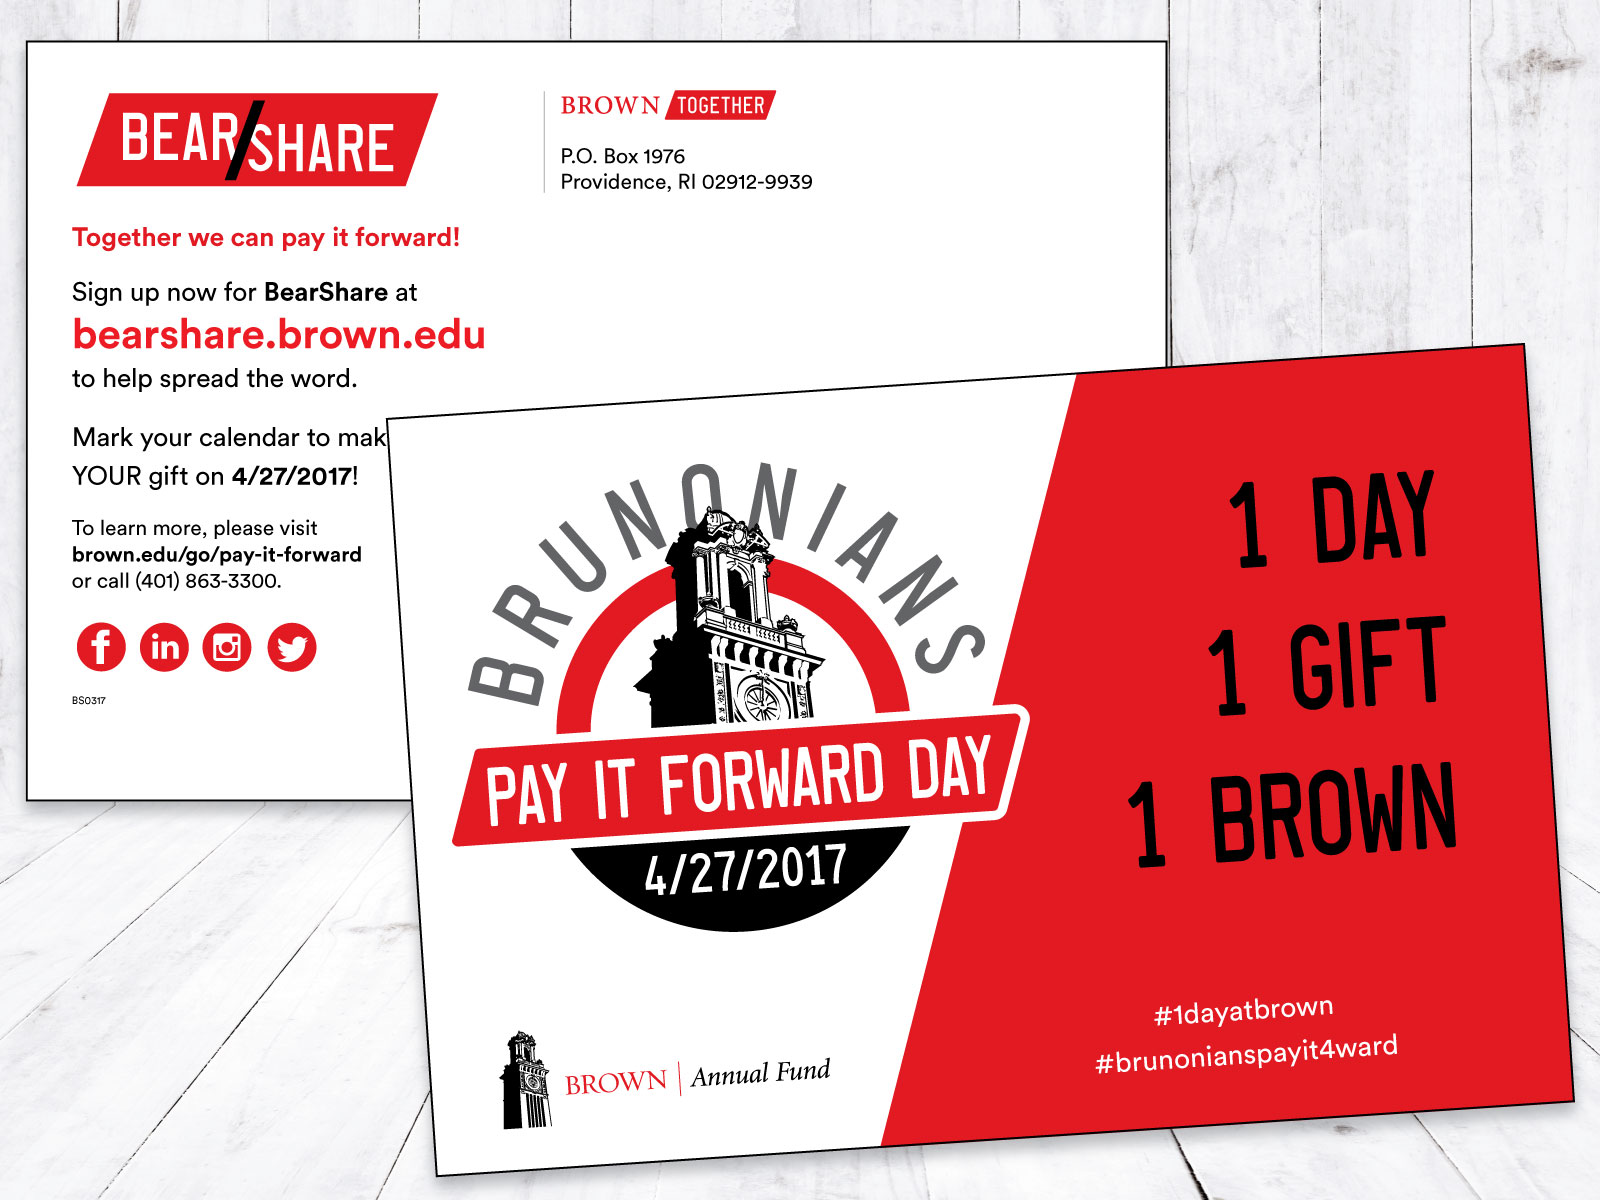 Brown University Pay It Forward Day